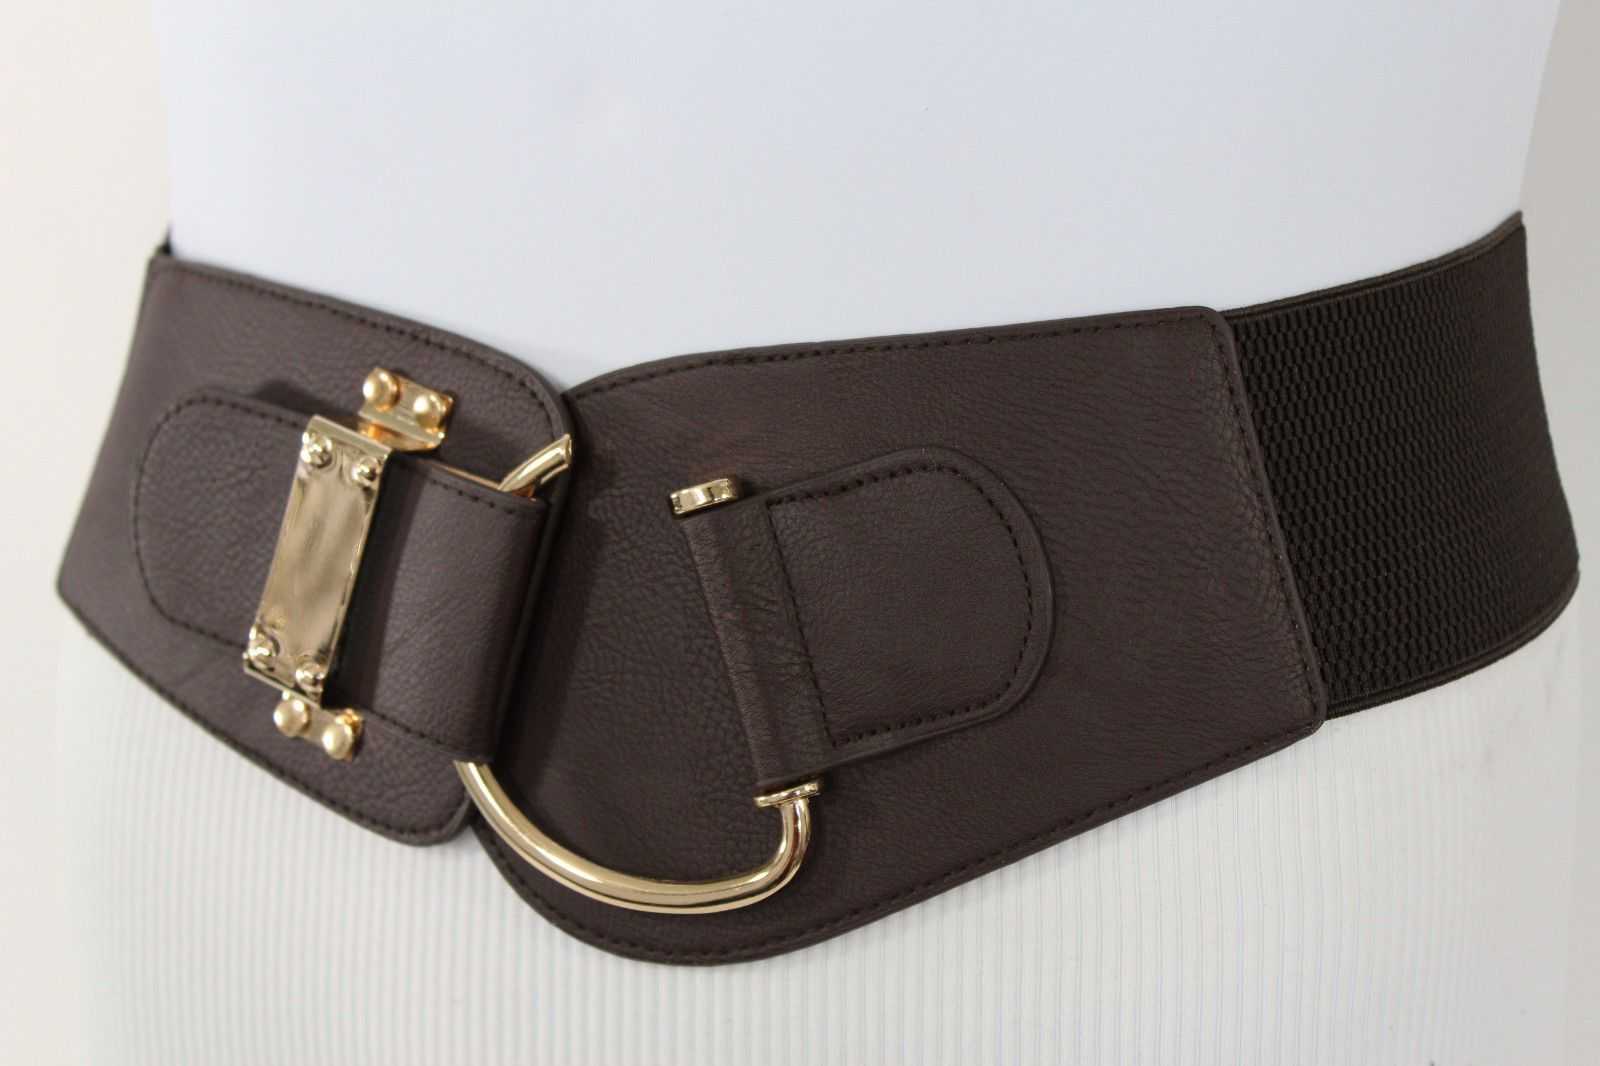 9a7c02a8d08 Blue Navy Blue Red White Pink Green Turquize Black Brown Dark Brown Beige  Gold Faux Leather Hip Waist Elastic Belt Big Gold Hook Buckle New Women  Fashion ...